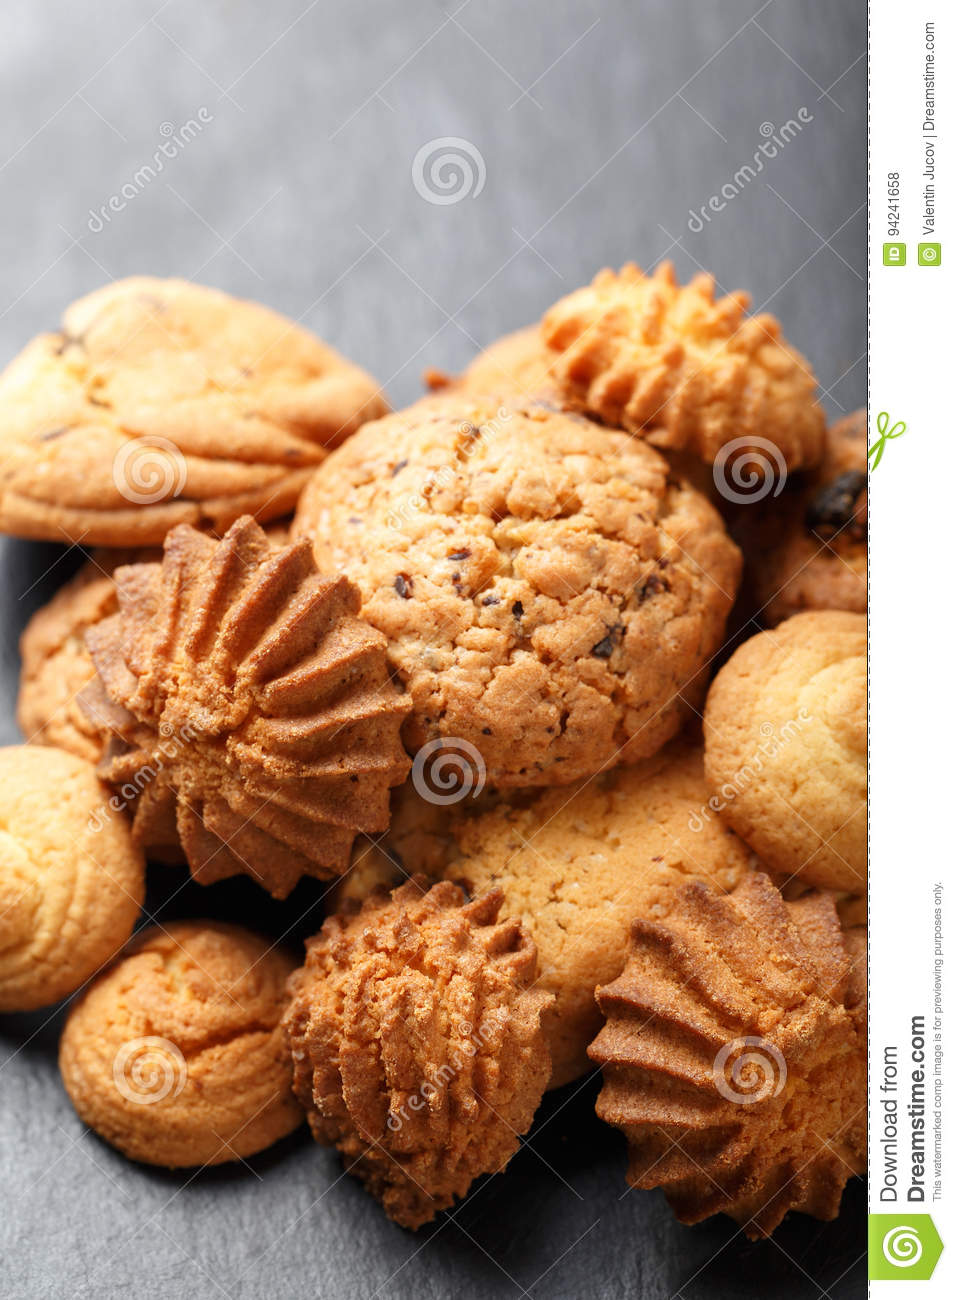 Assorted cookies with chocolate chip, oatmeal raisin on stone slate background on wooden background close up. Homemade baking